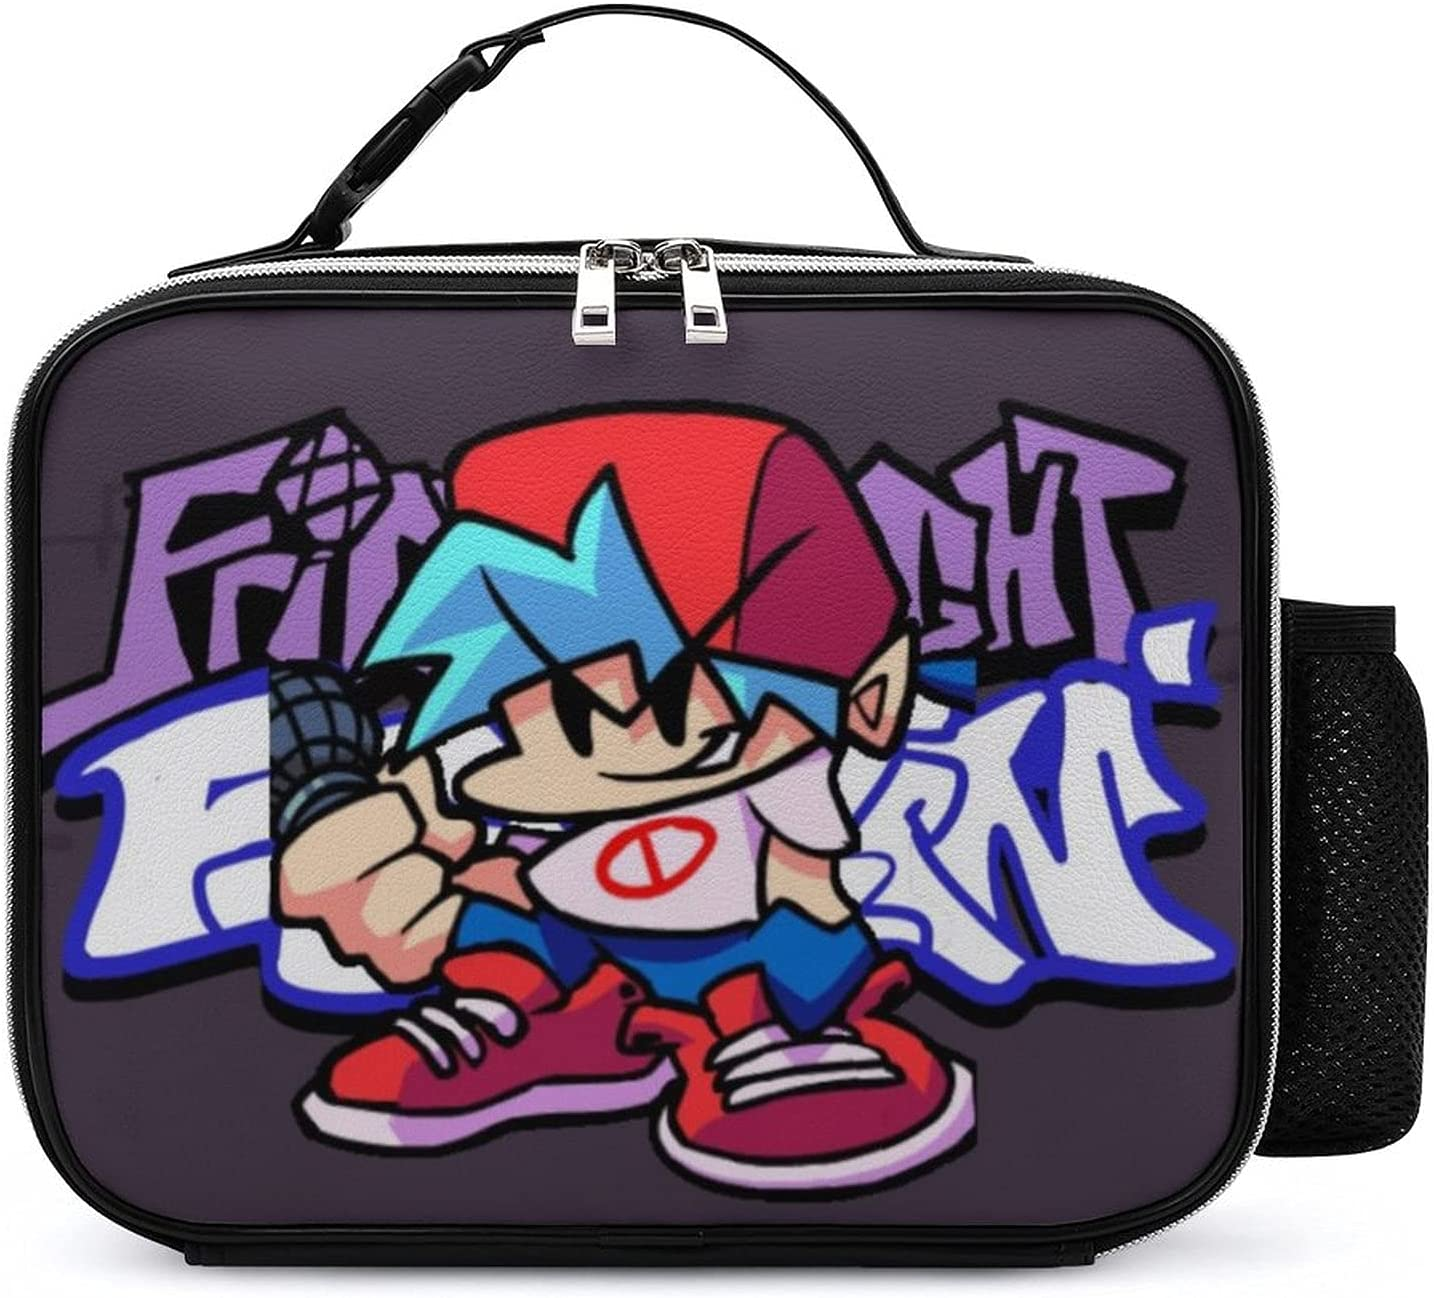 Friday Night Fun-kin Lunch Bag Reusable Leak-Pr Custom Insulated Cheap mail order specialty Discount mail order store